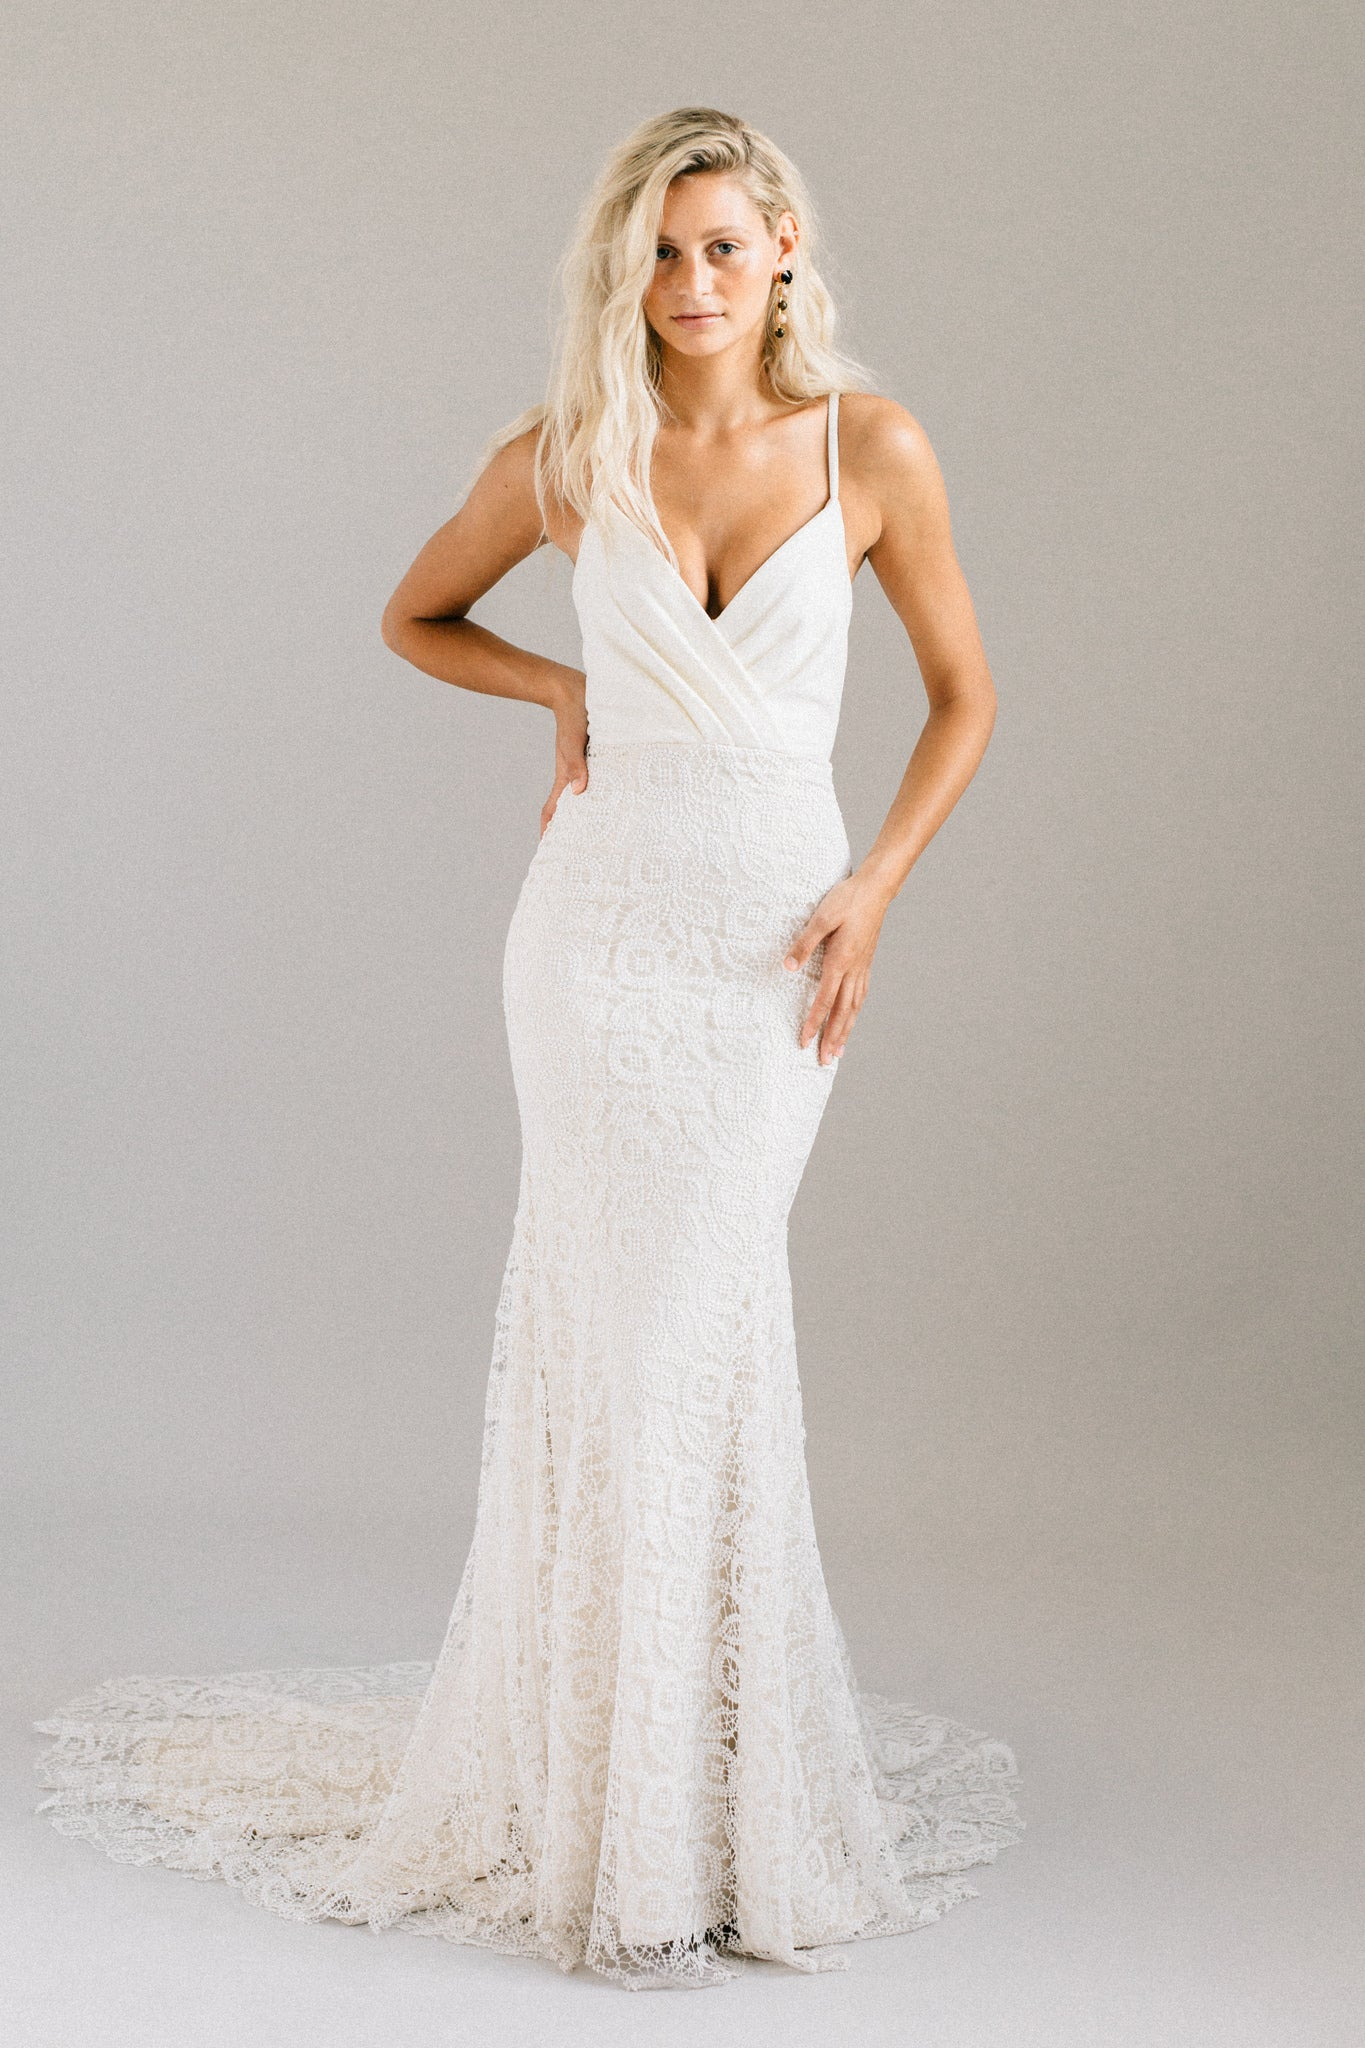 Boho wedding dress with a velvet top and a fitted mermaid lace skirt